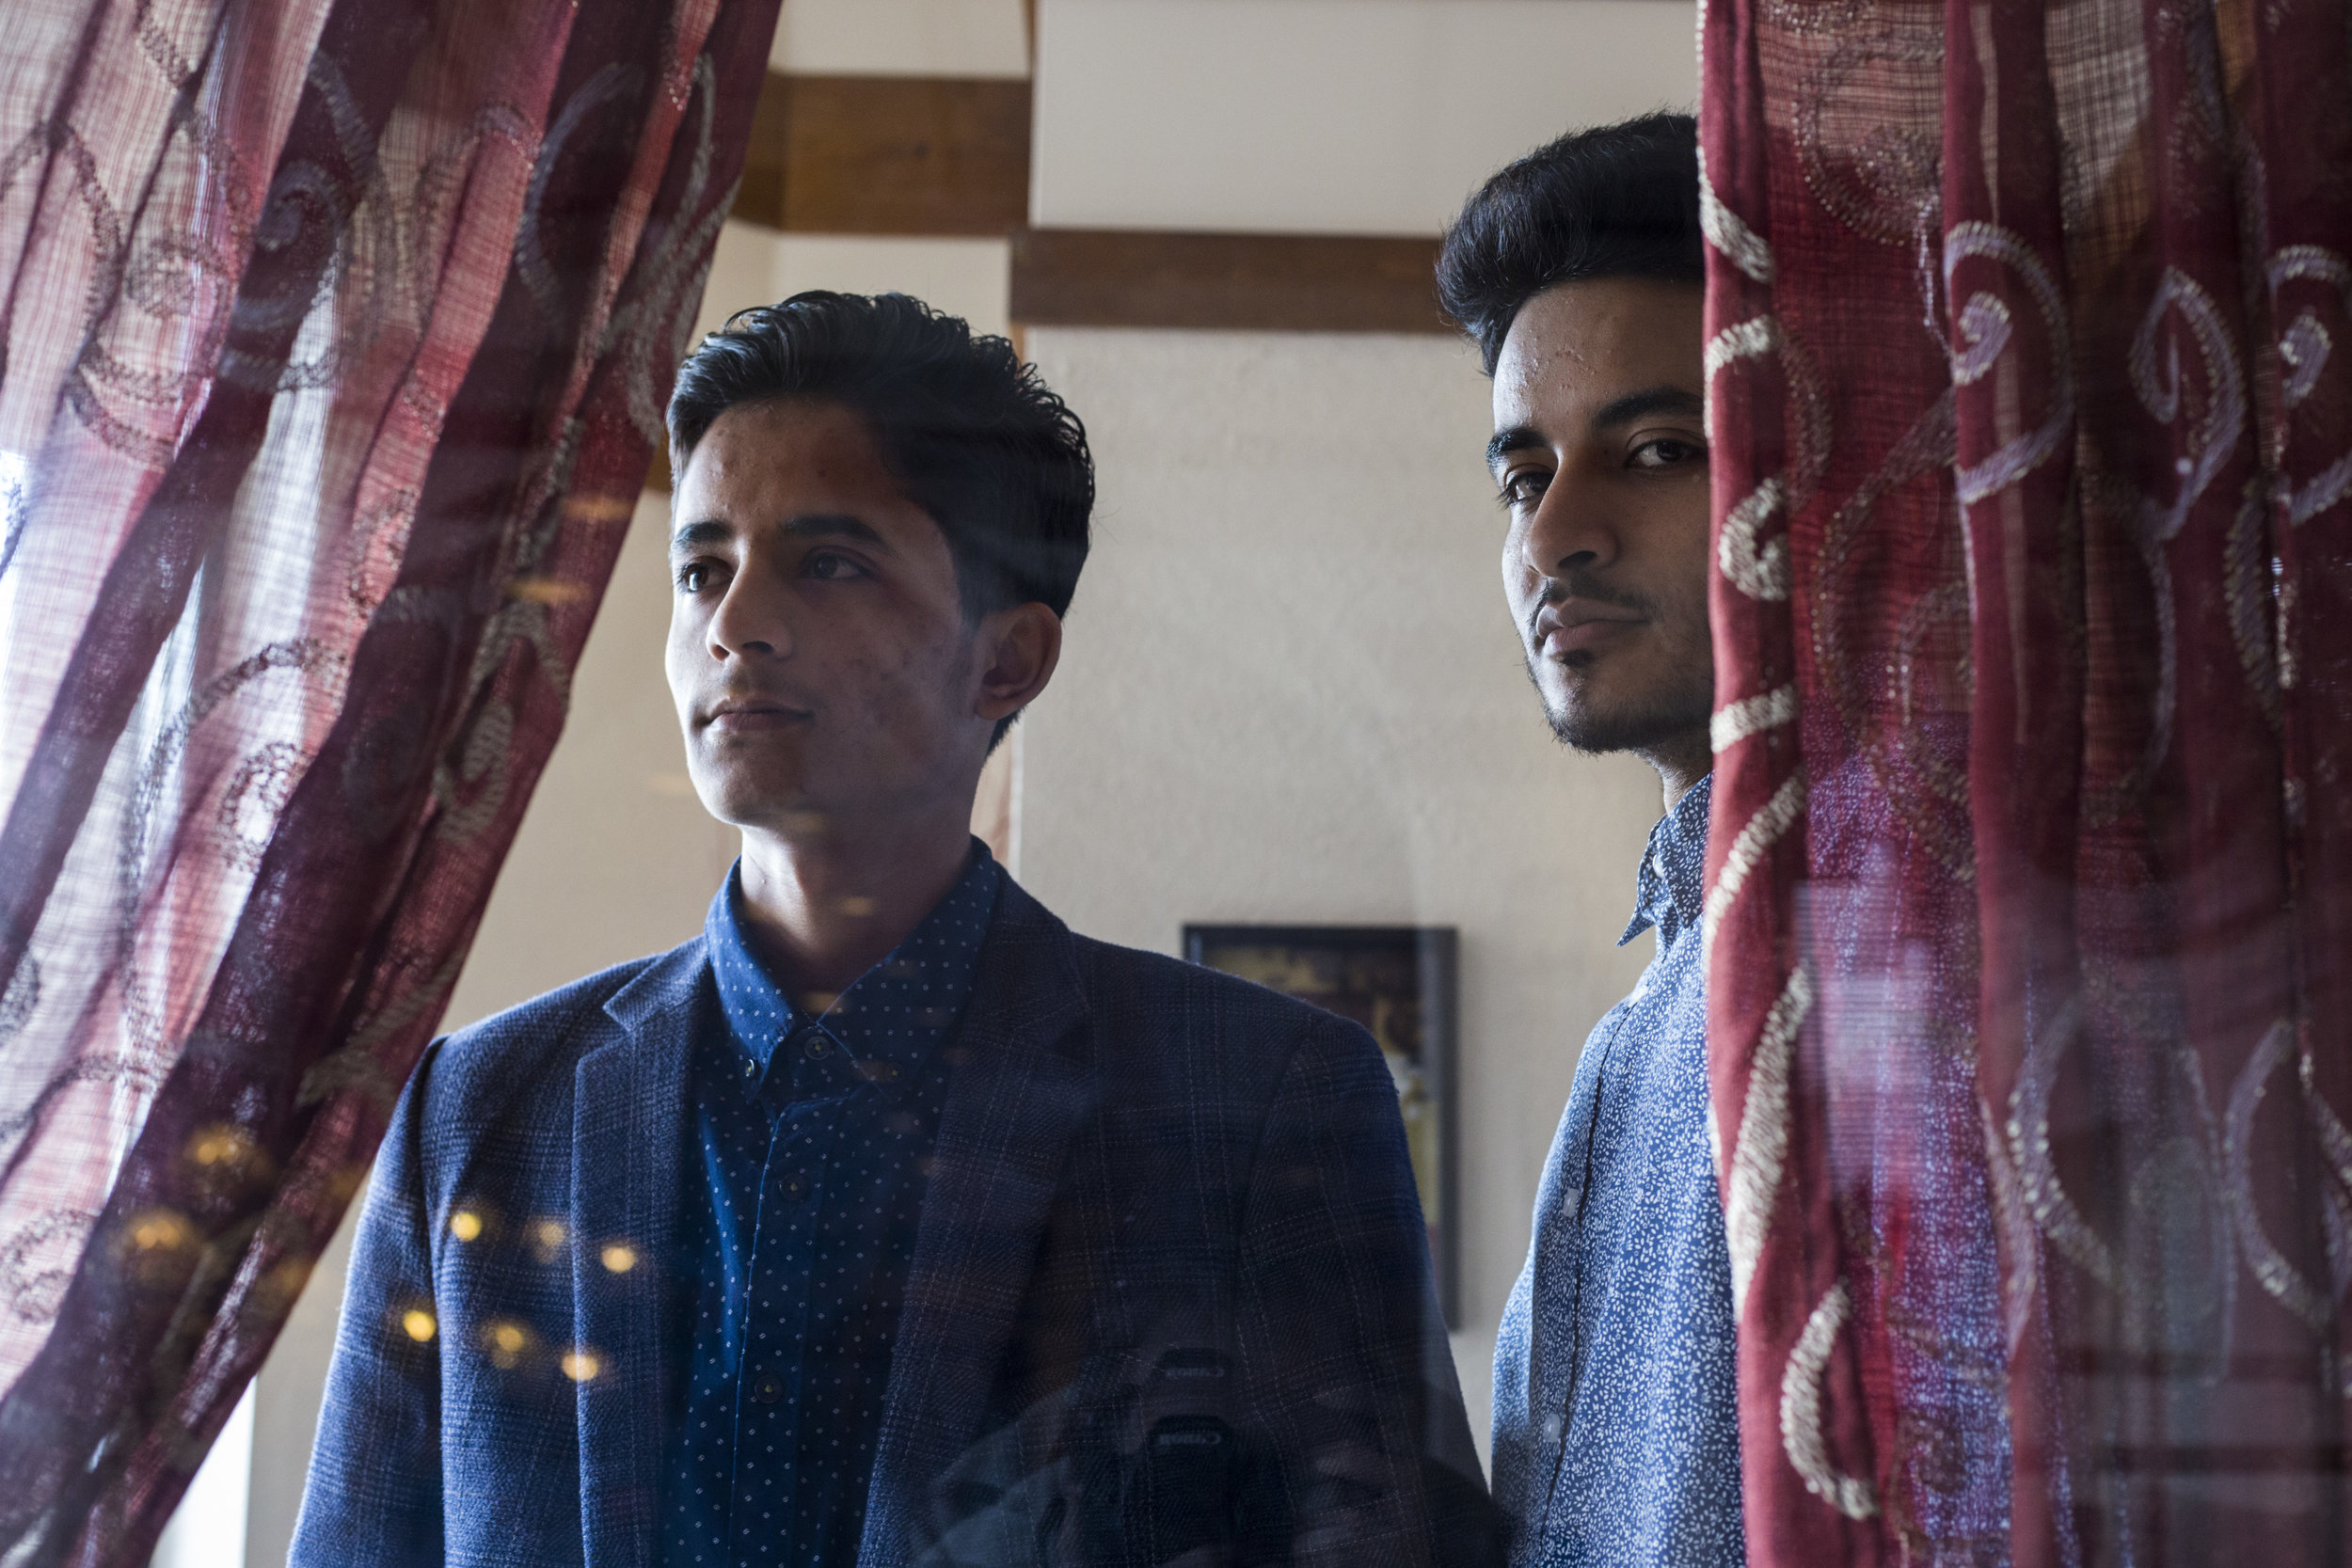 Ammar, 19, left and Tareq Aziz, 21, right, at Kabob, a Lebanese restaurant in Flint, Michigan on March 19, 2017. As a result of the travel ban this past January, the two brothers, natives of Yemen, were held at Dulles airport in Washington. They are plaintiffs in a law suit against President Trump.